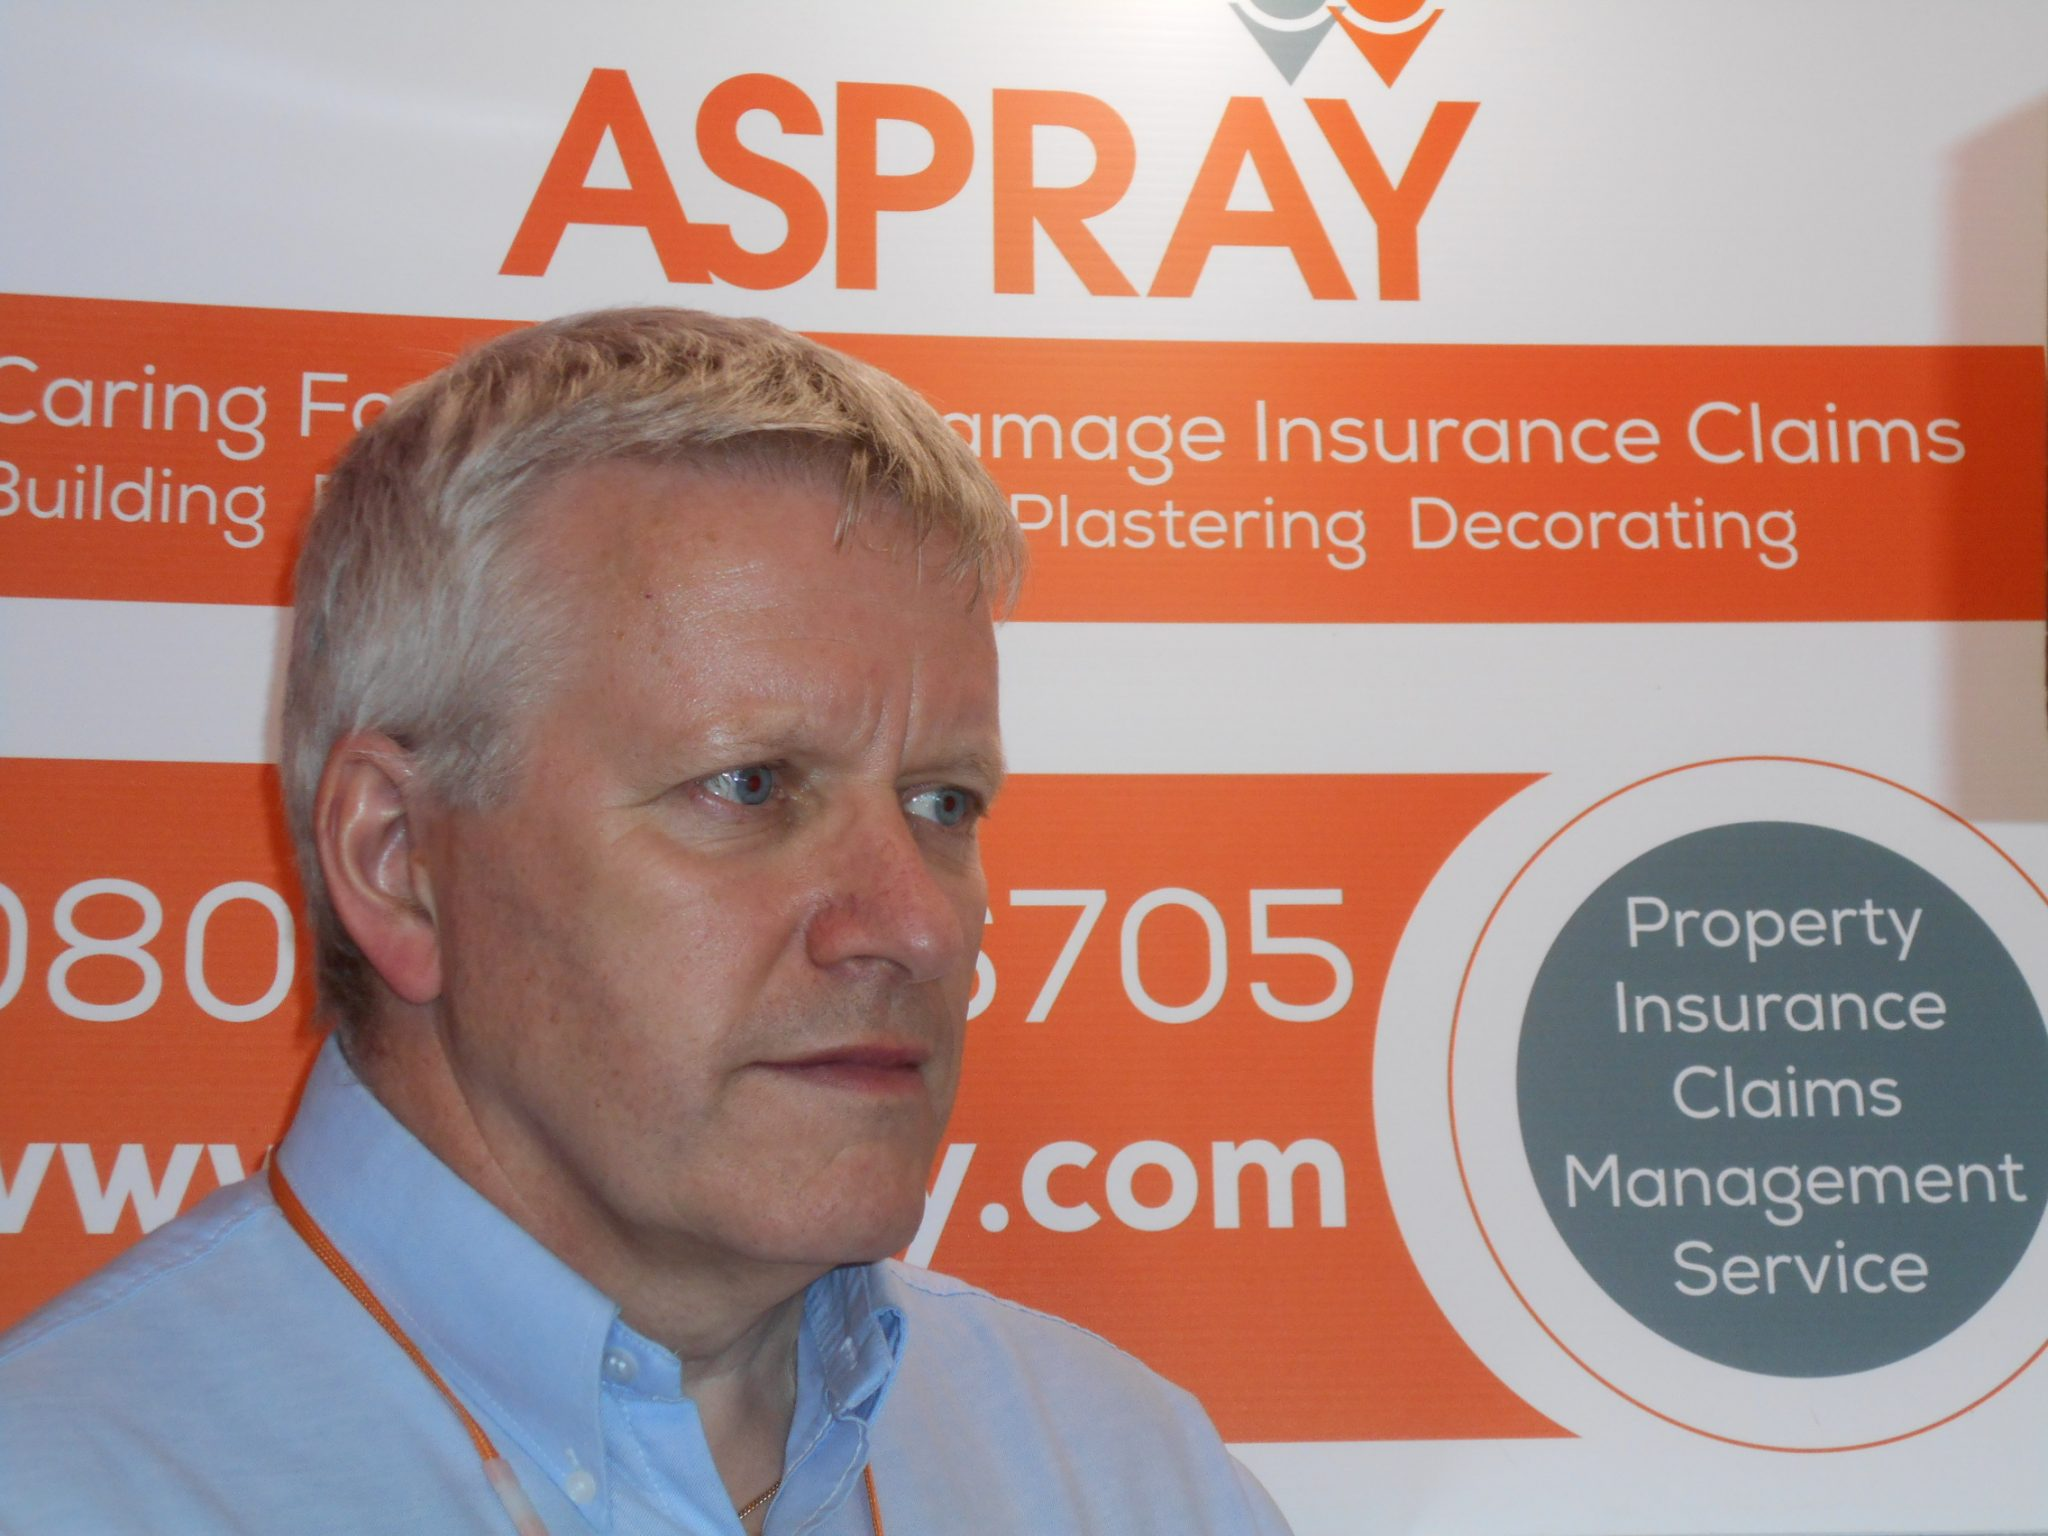 Aspray Wakefield  Property Damage Insurance Claims Management. Bruce Funeral Home Gardner Ks. Portfolio Balance Approach Oil Mineral Rights. United Health Care Supplemental Insurance. Refinance Mortgage Fha London Student Housing. How To Manage Storage On Iphone. Small Business Courses Online. How To Start A Cardboard Recycling Business. Credit Card Merchant Id Lookup